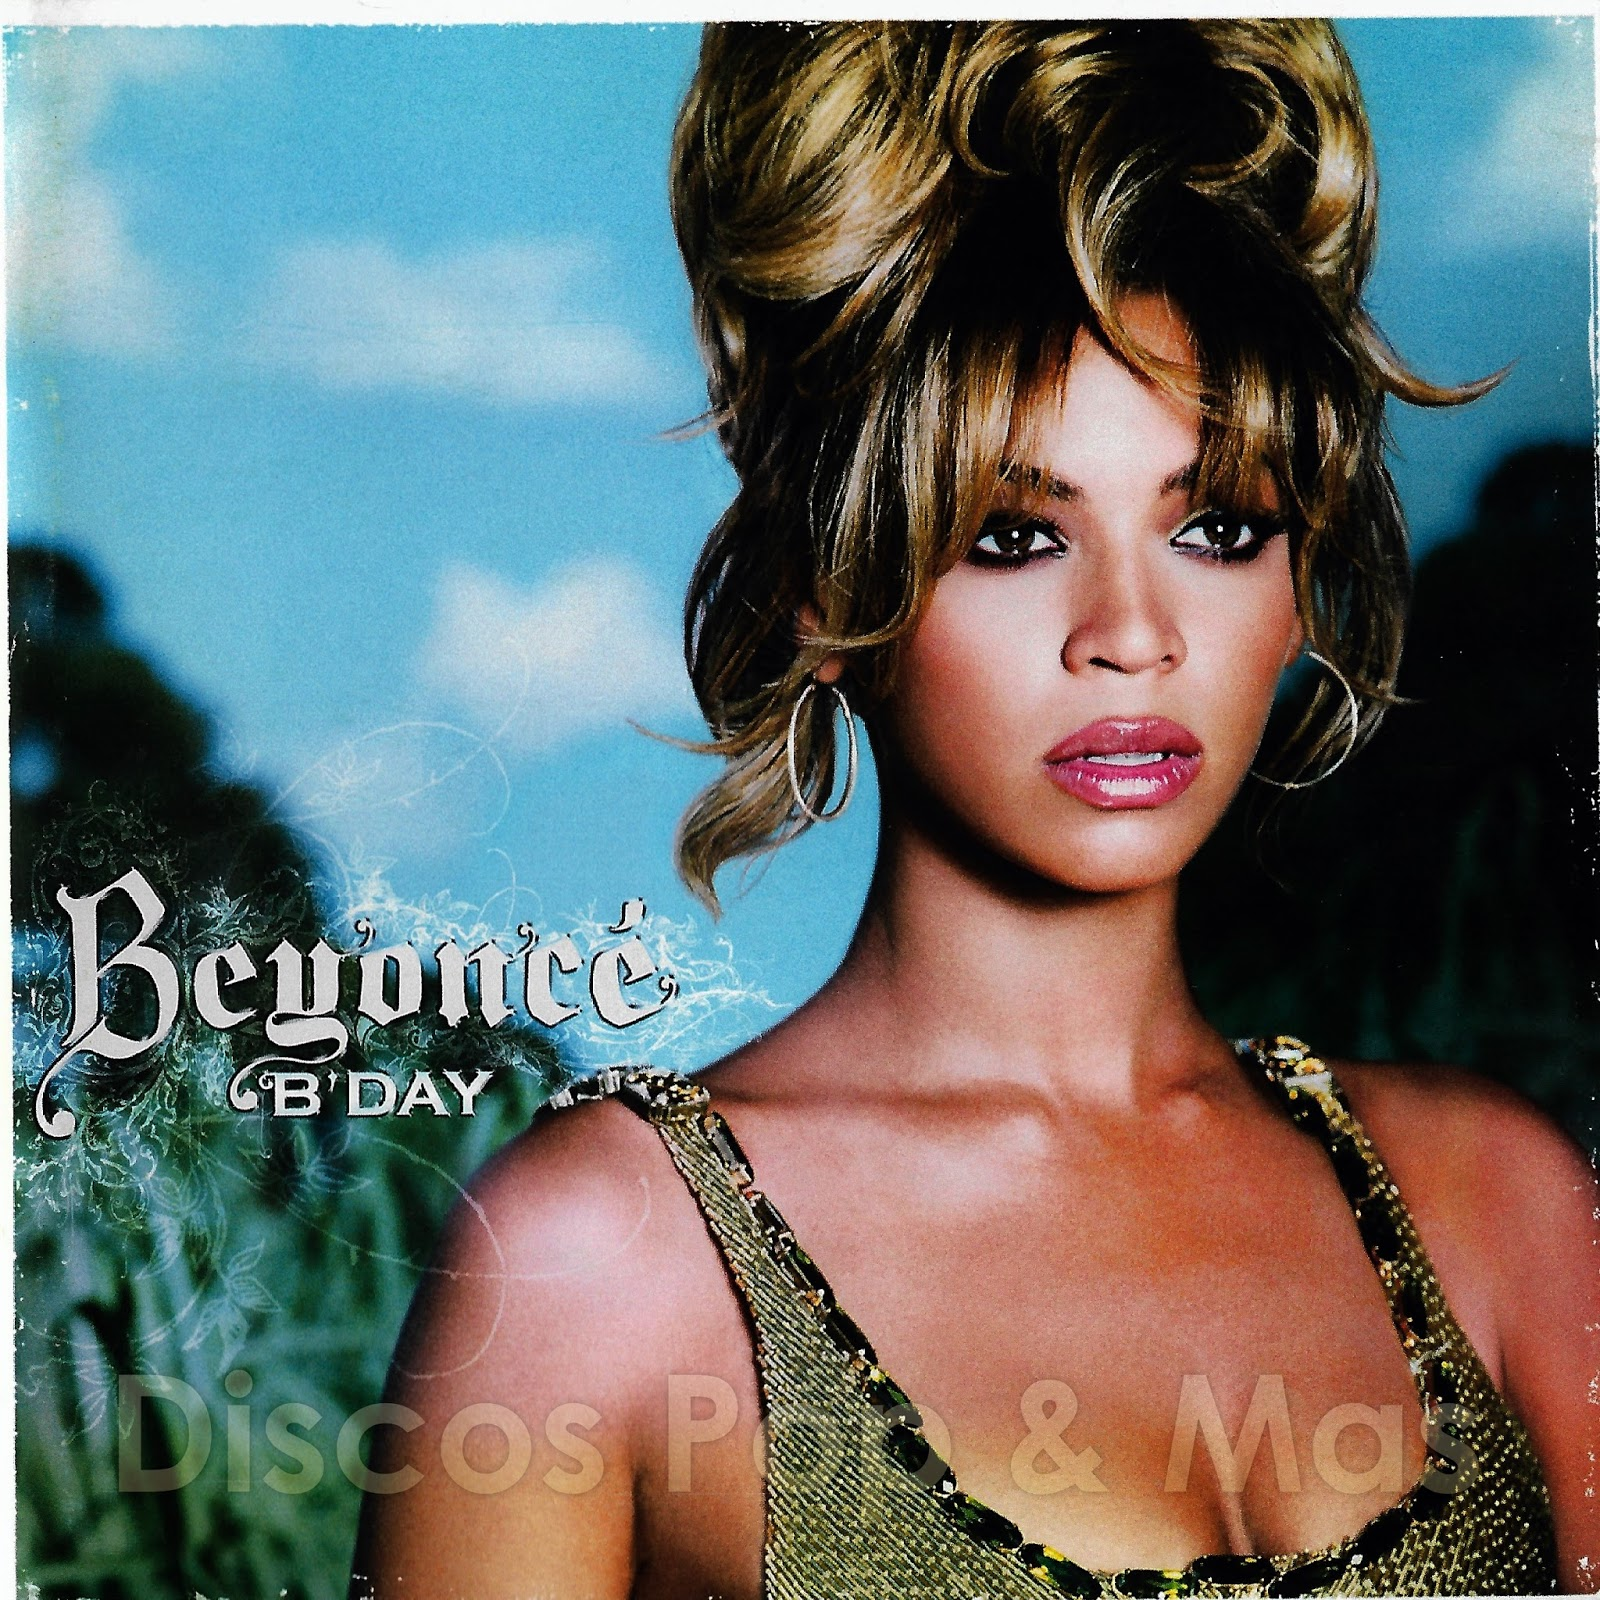 Discos Pop & Mas: Beyoncé - B'Day